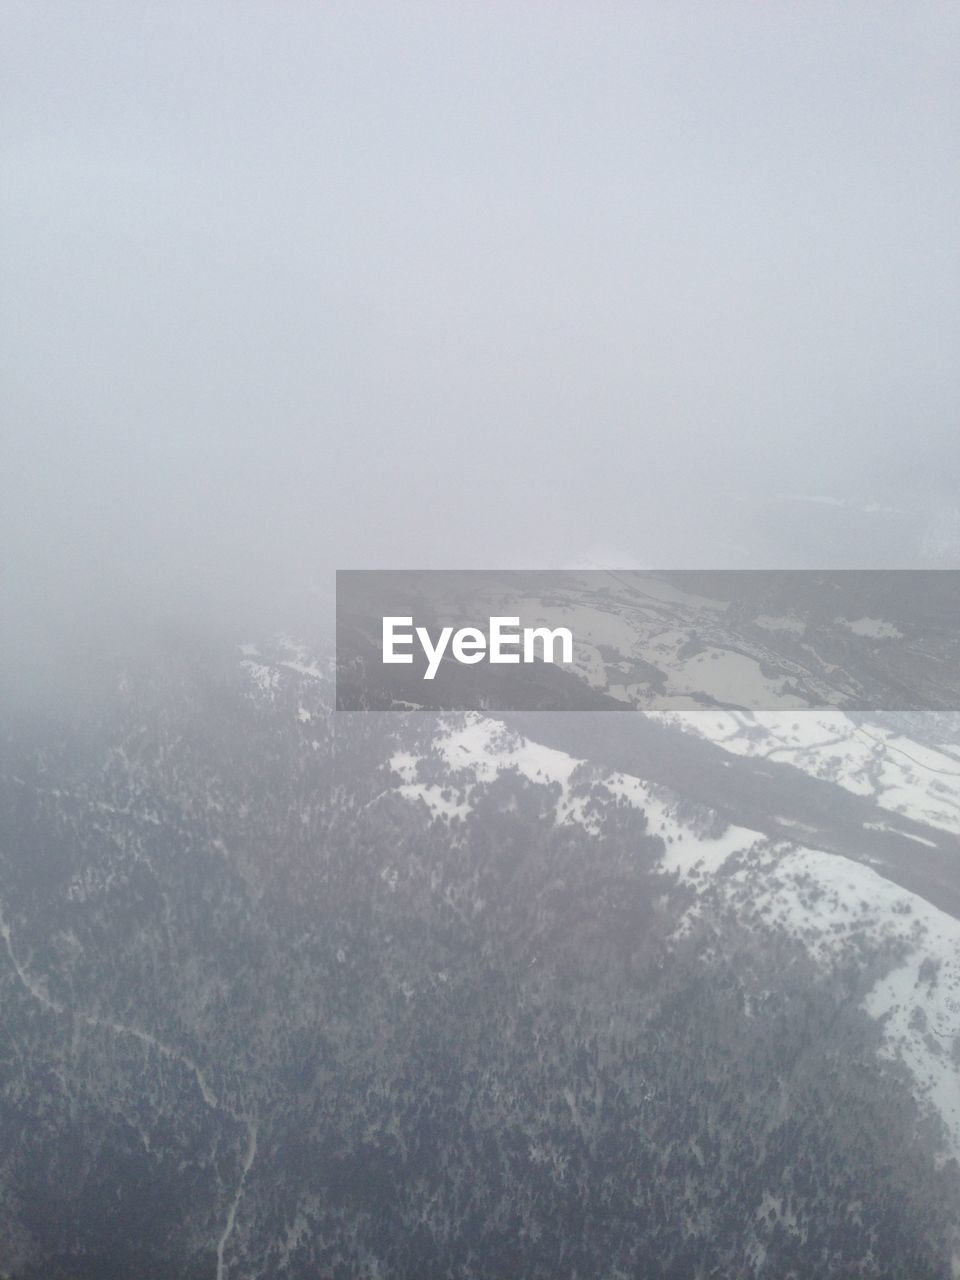 beauty in nature, nature, scenics, landscape, aerial view, cold temperature, winter, tranquility, tranquil scene, no people, weather, outdoors, snow, day, fog, mountain, sky, airplane wing